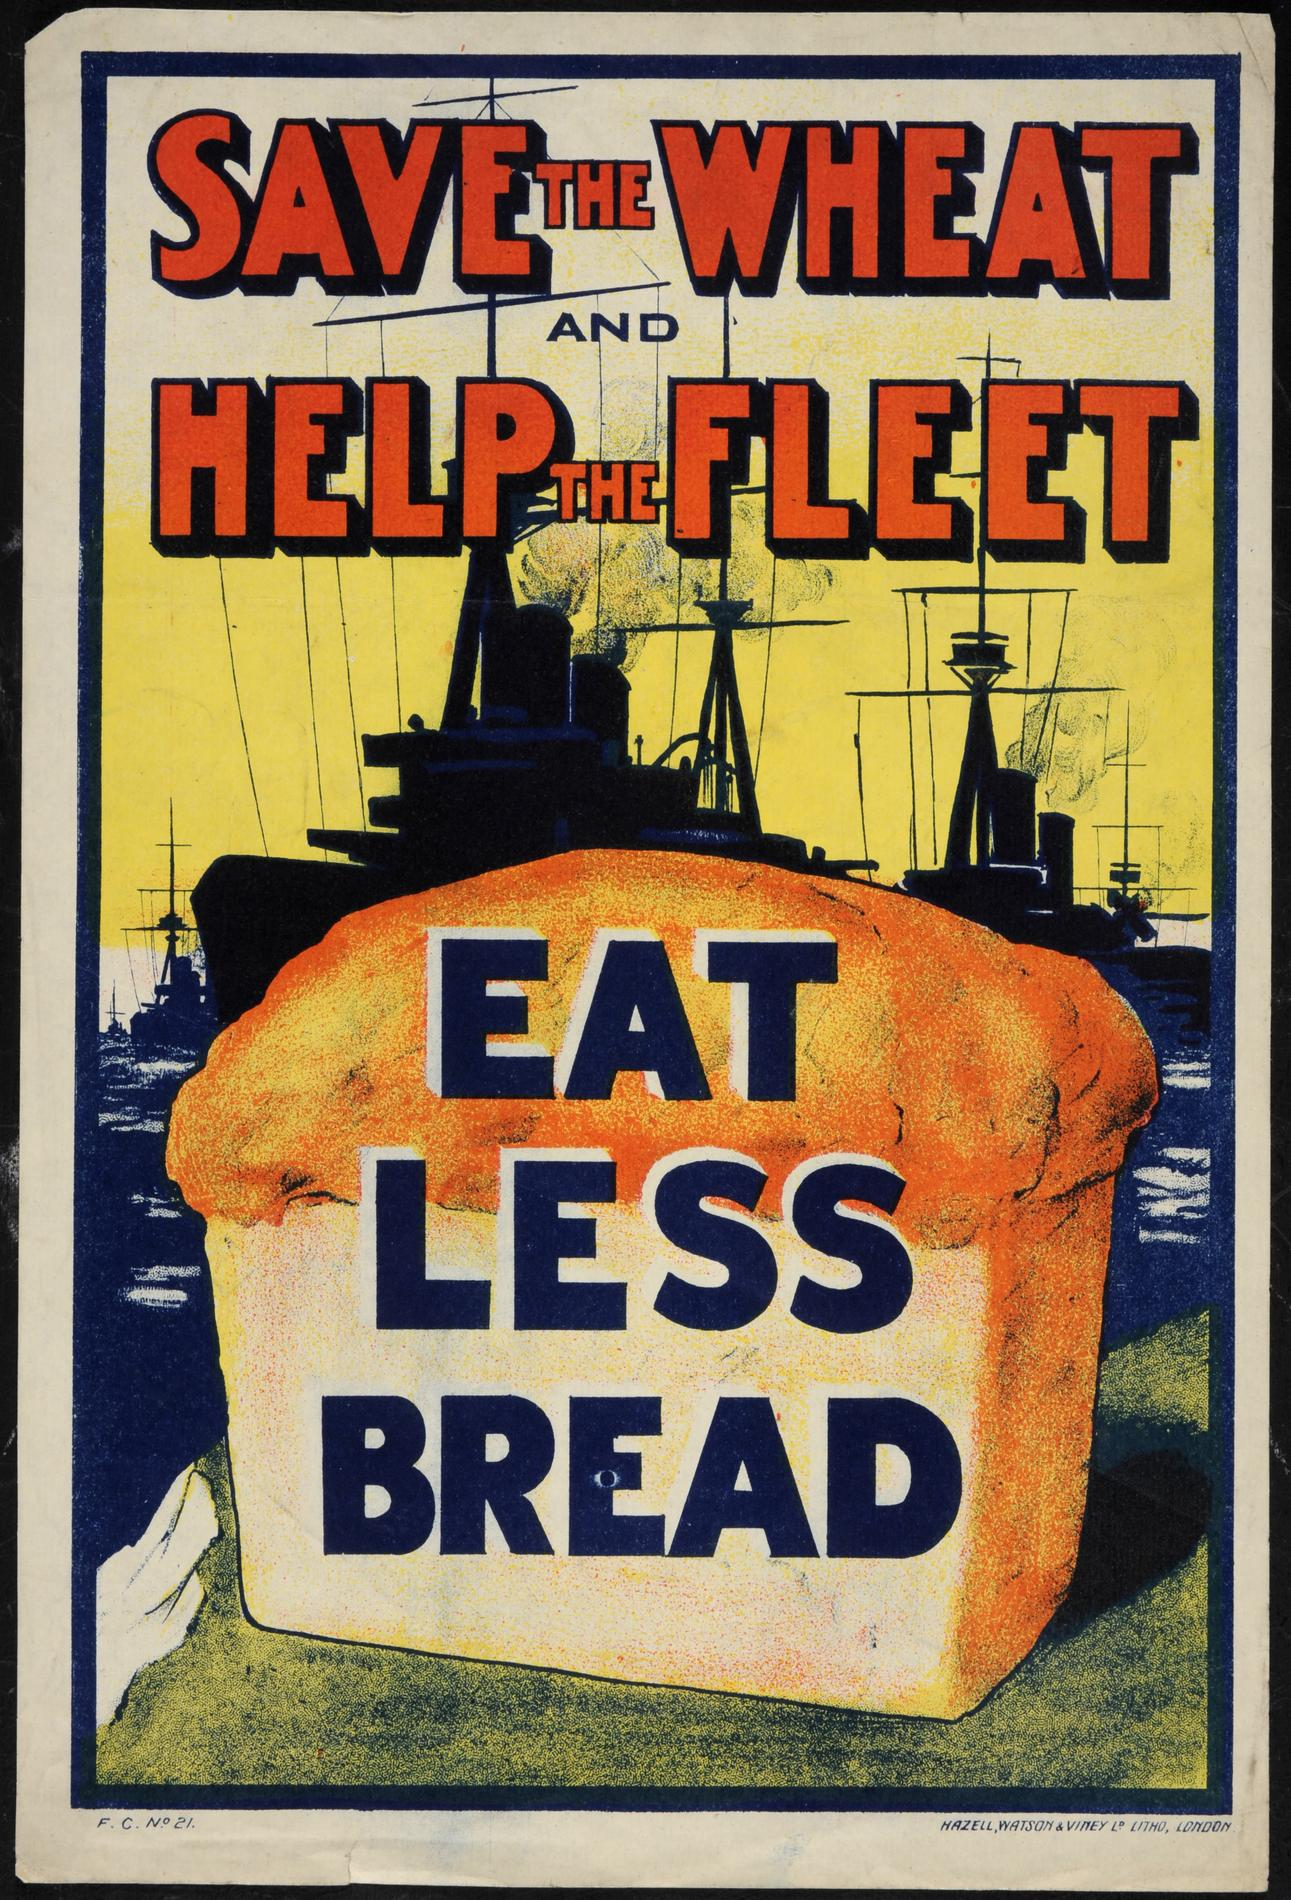 Save the wheat and help the fleet. Eat Less Bread (Poster)